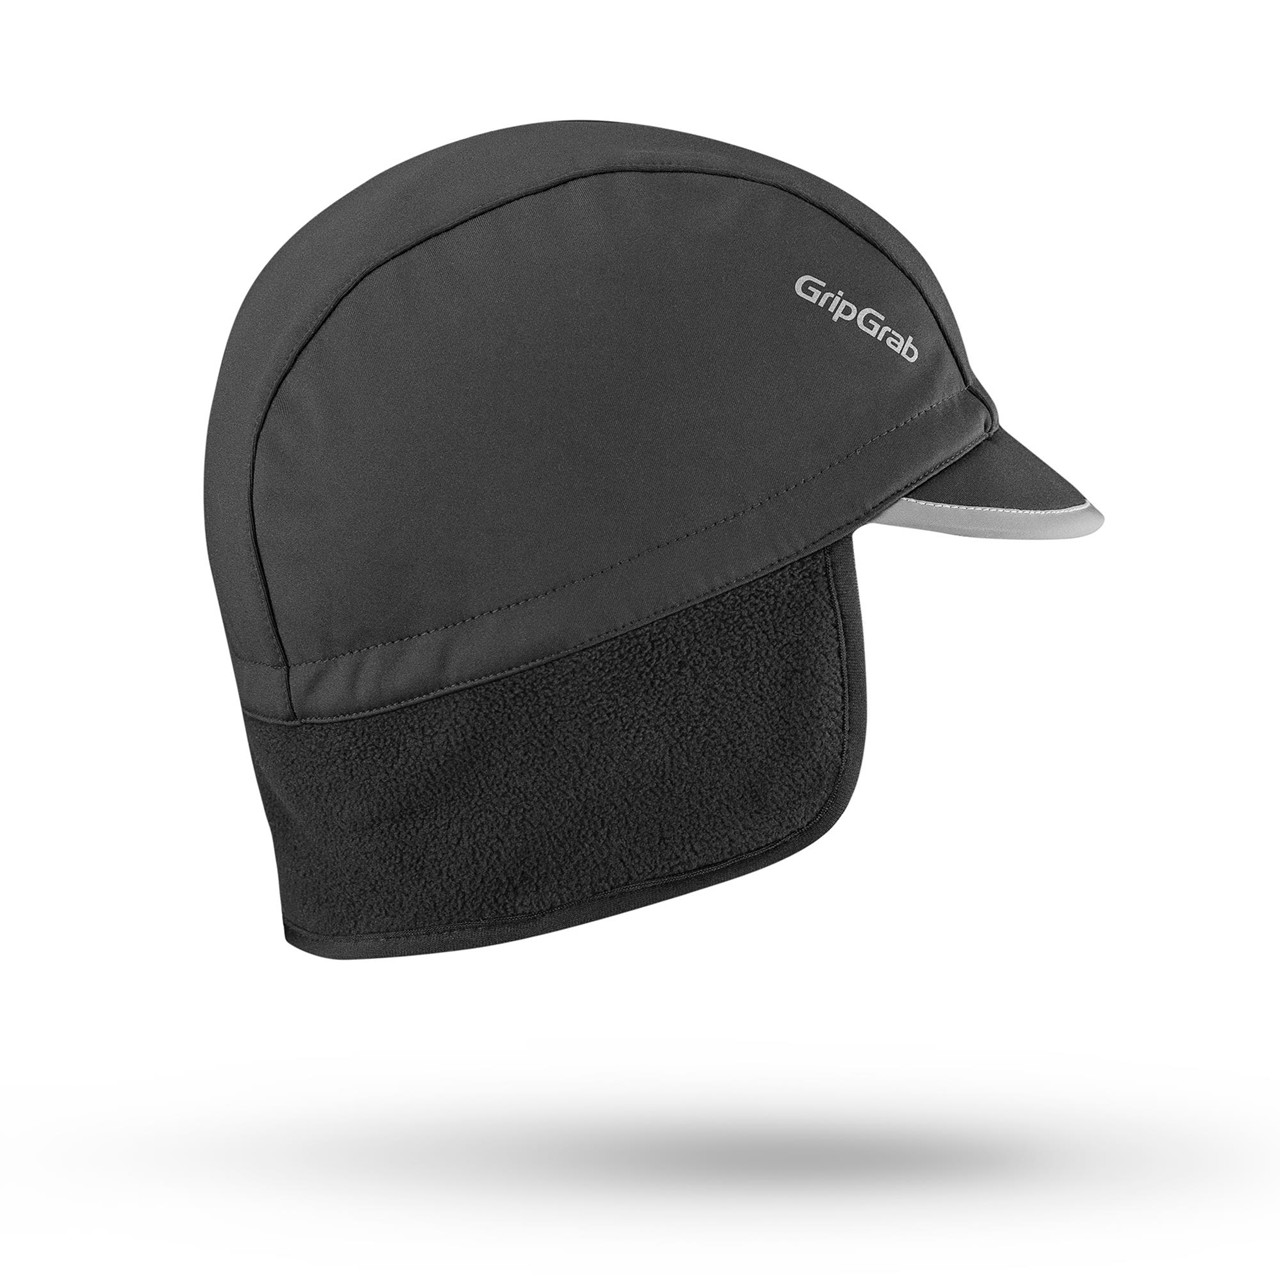 Grip Grab Winter Cycling Cap (Black, S)